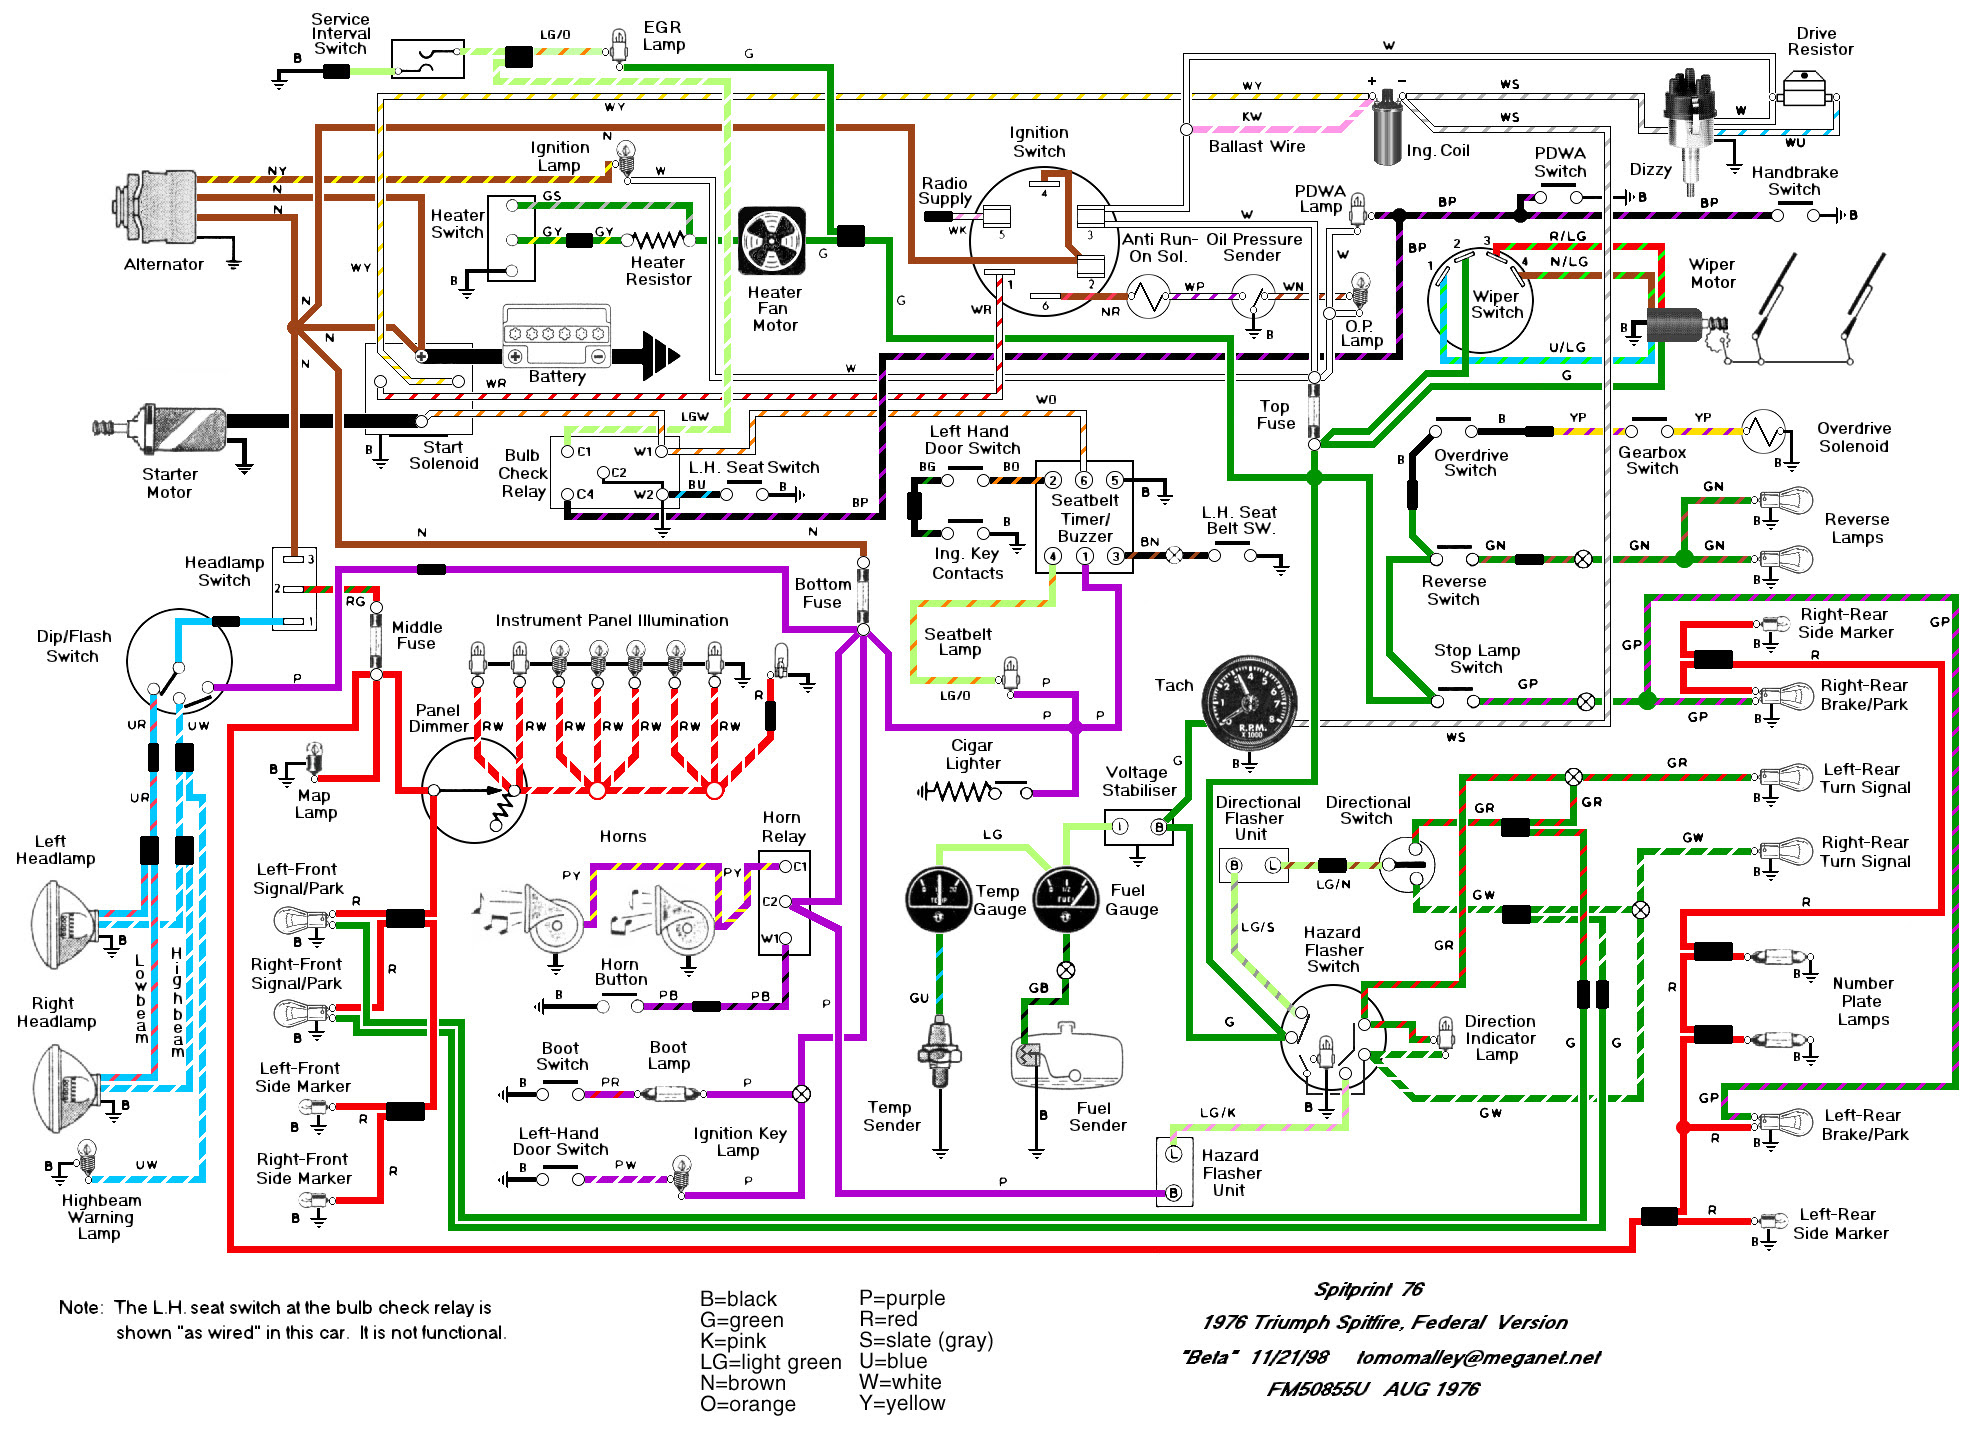 1968 Triumph Tr250 Wiring Diagram 2010 Ford Mustang Wire Diagram Bege Wiring Diagram